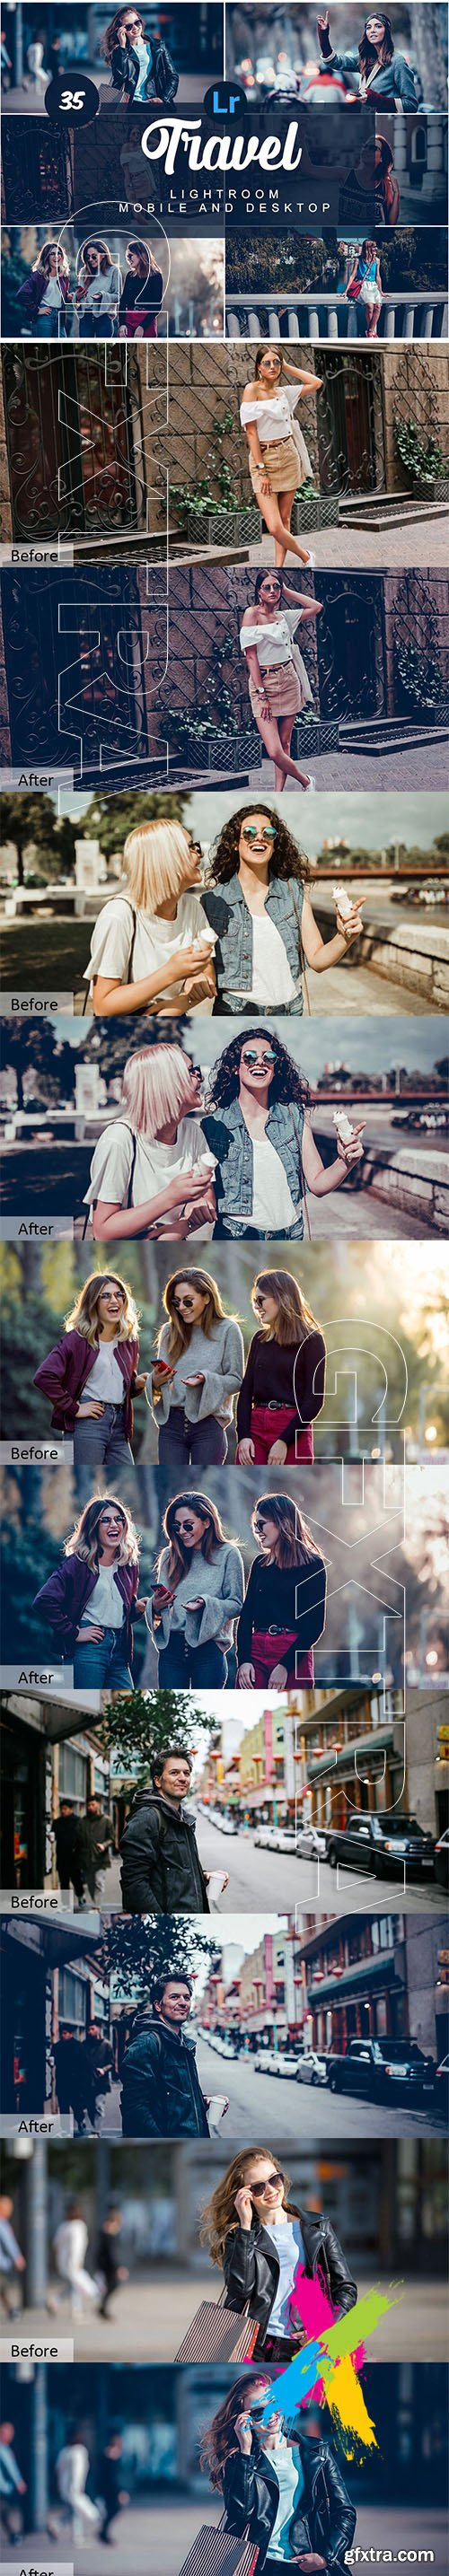 CreativeMarket - Travel Mobile and Desktop PRESETS 5736463